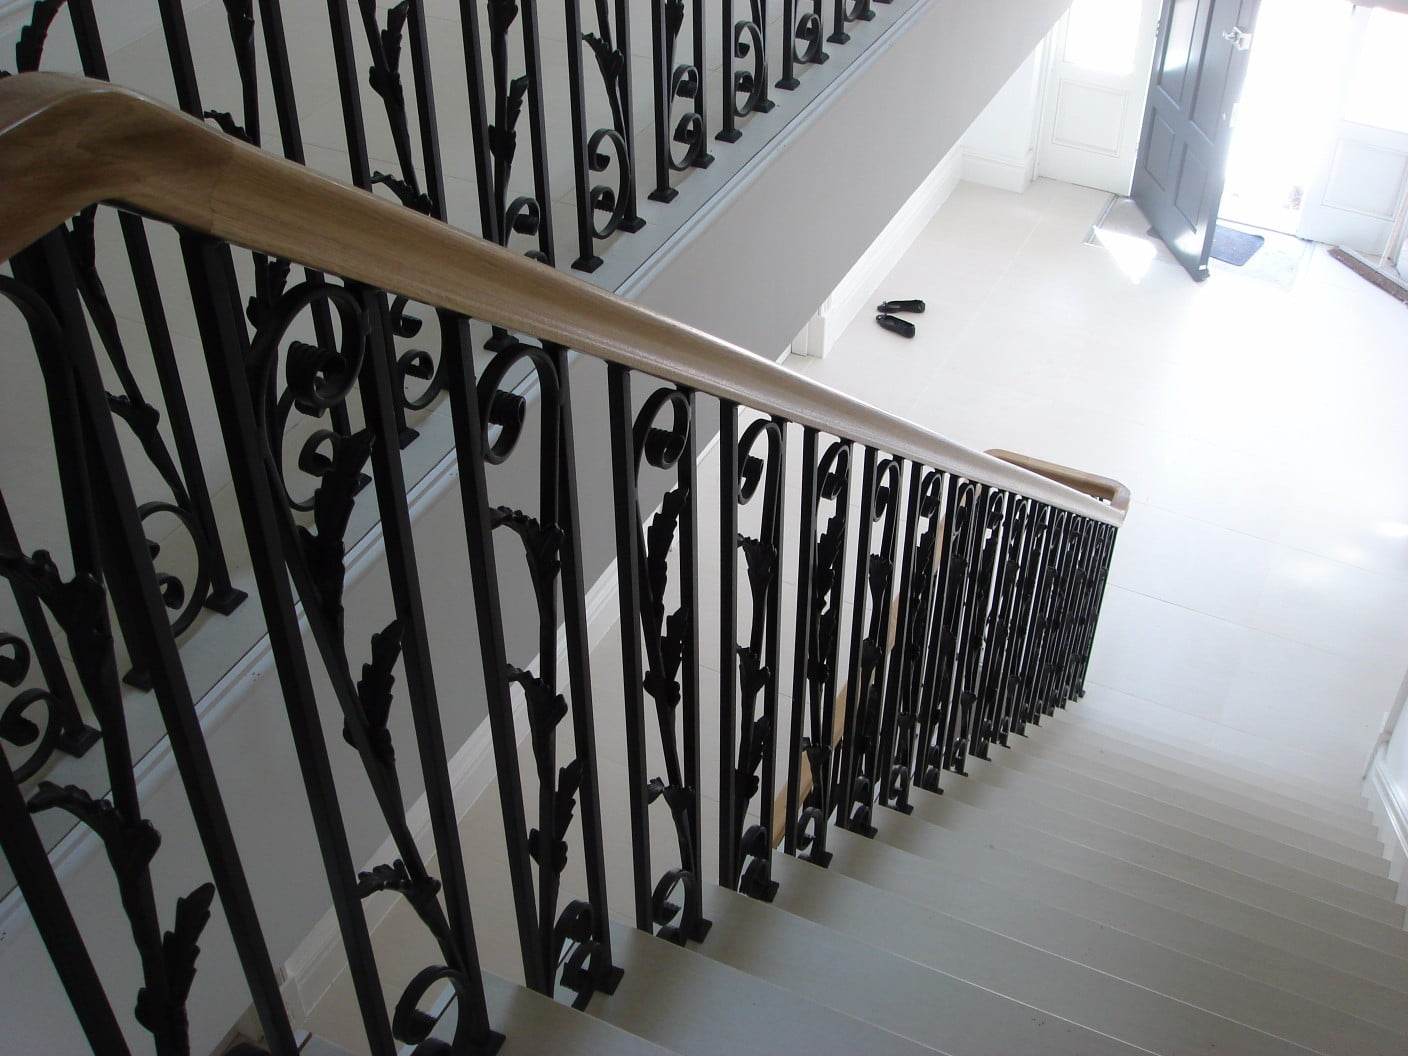 Jrs Fabrications Architectural Metalworks Metal Staircases In Stockport And The North West